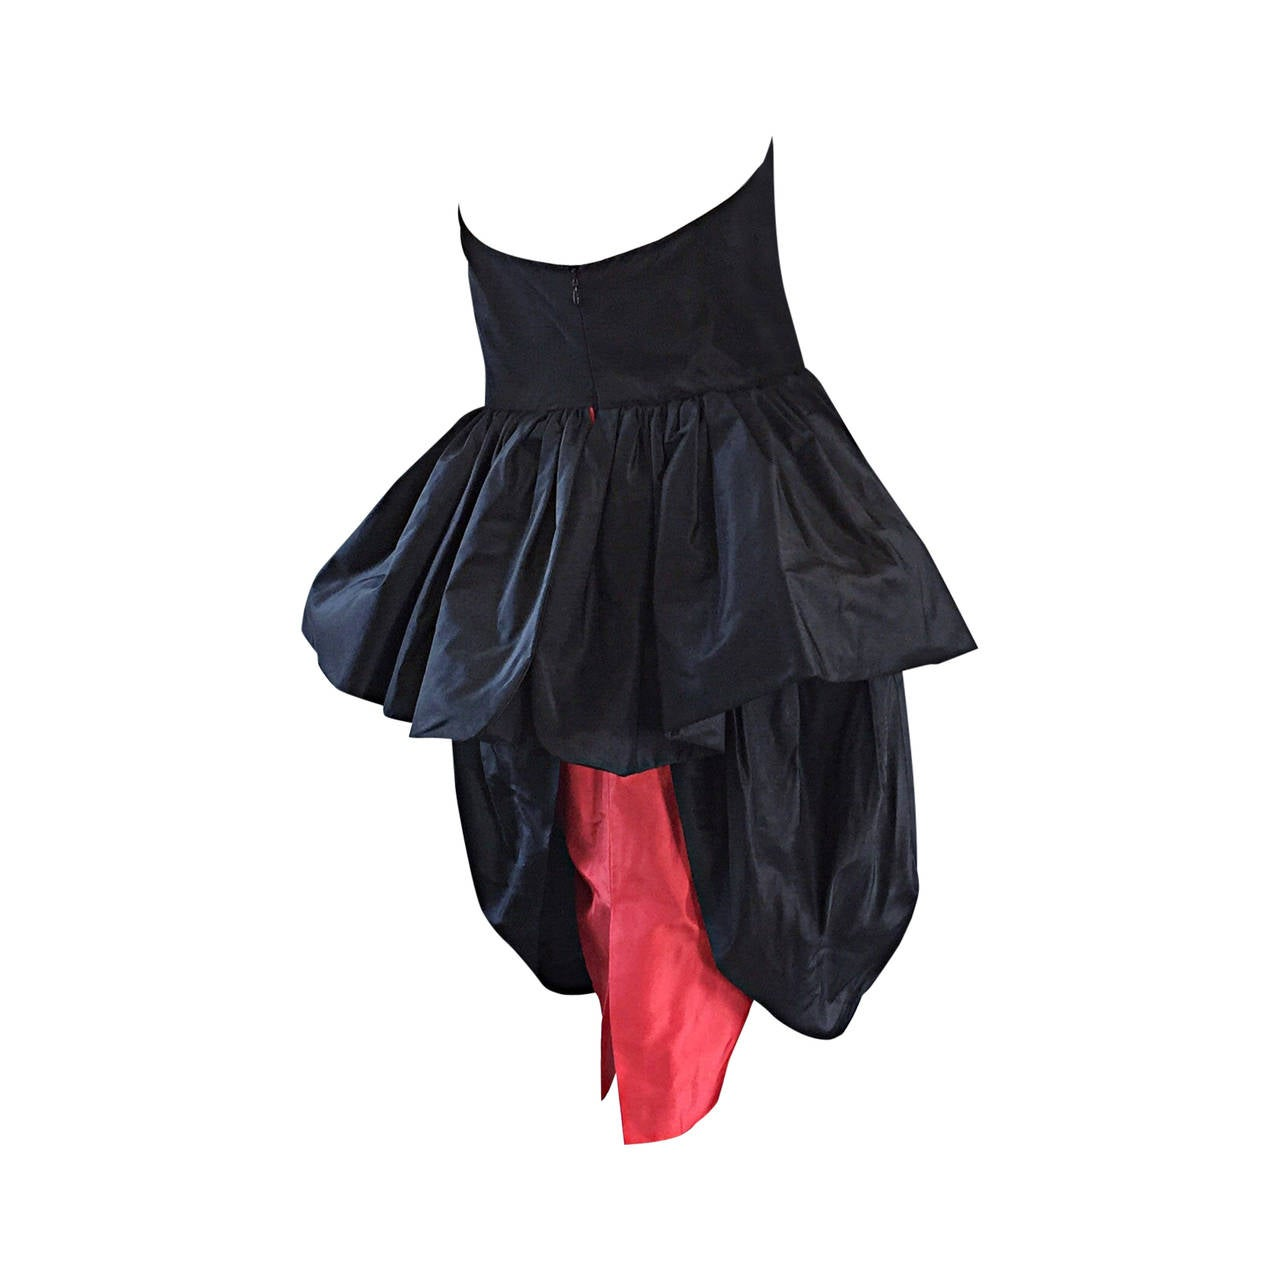 Rare Vintage Adam Beall Black + Red Strapless Silk ' Pouf ' Dress 1